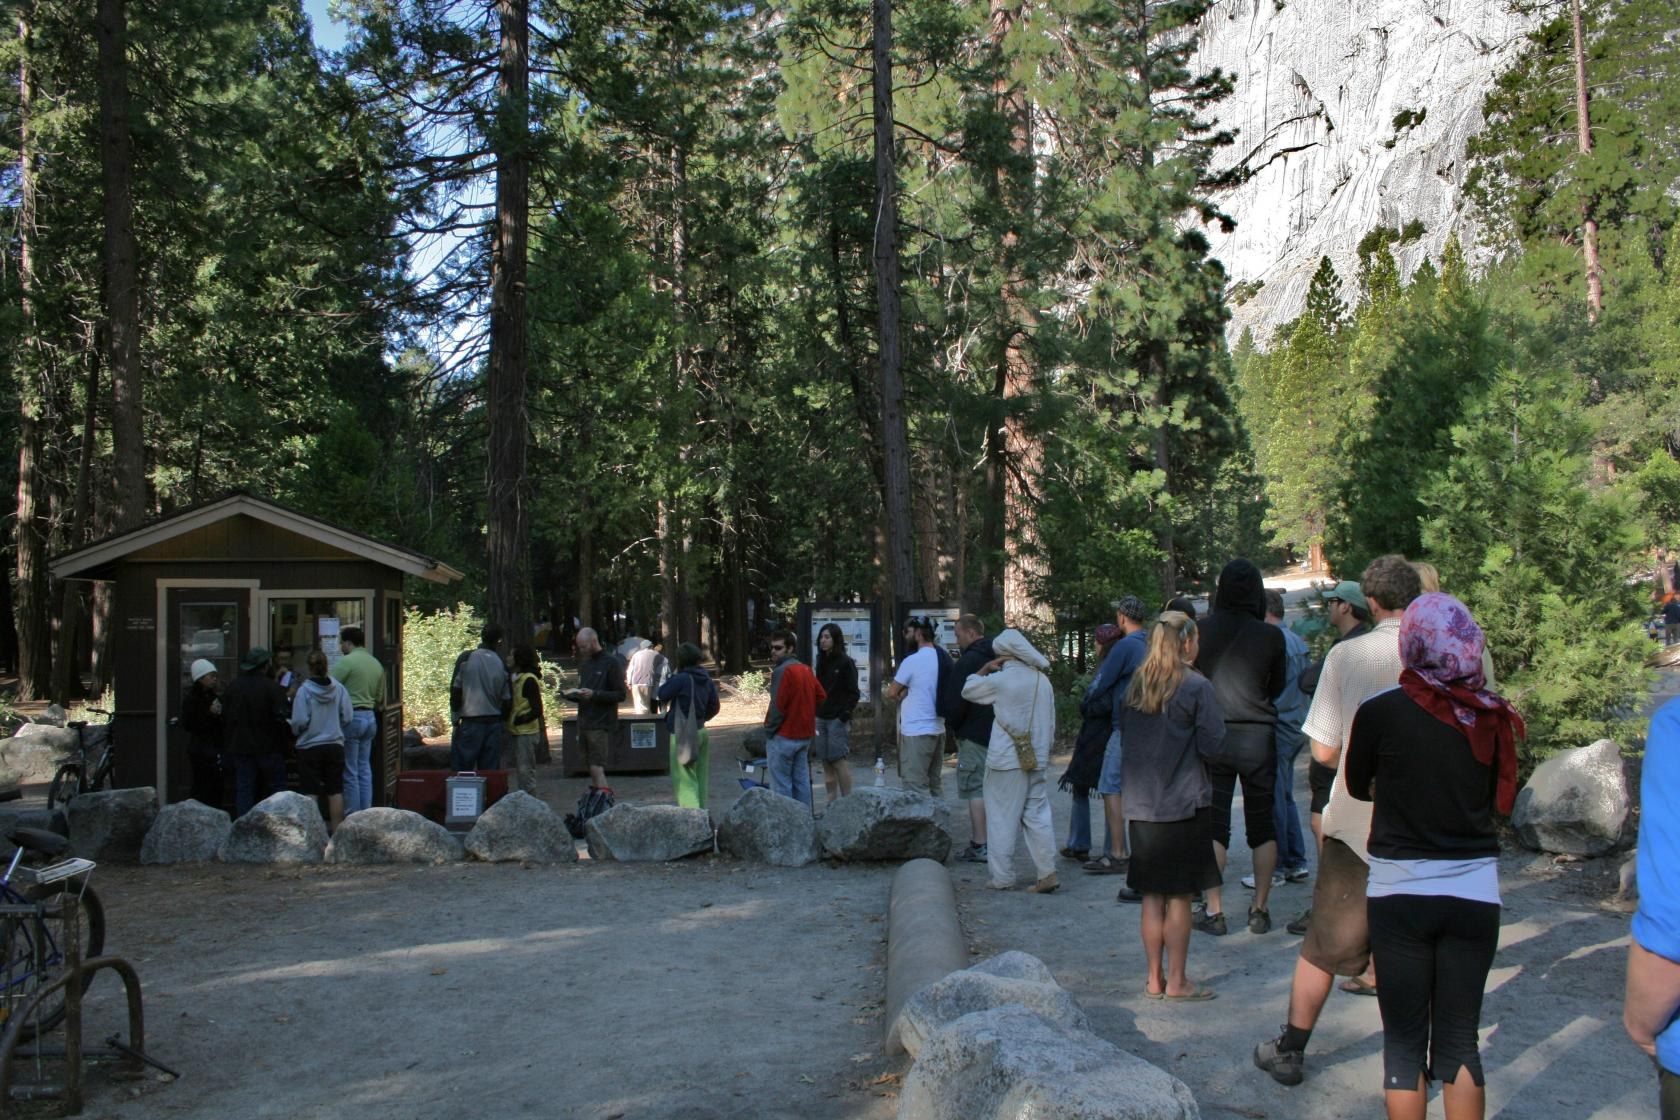 4 Camping Camping In Yosemite S Camp 4 The Birthplace Of Modern Rock